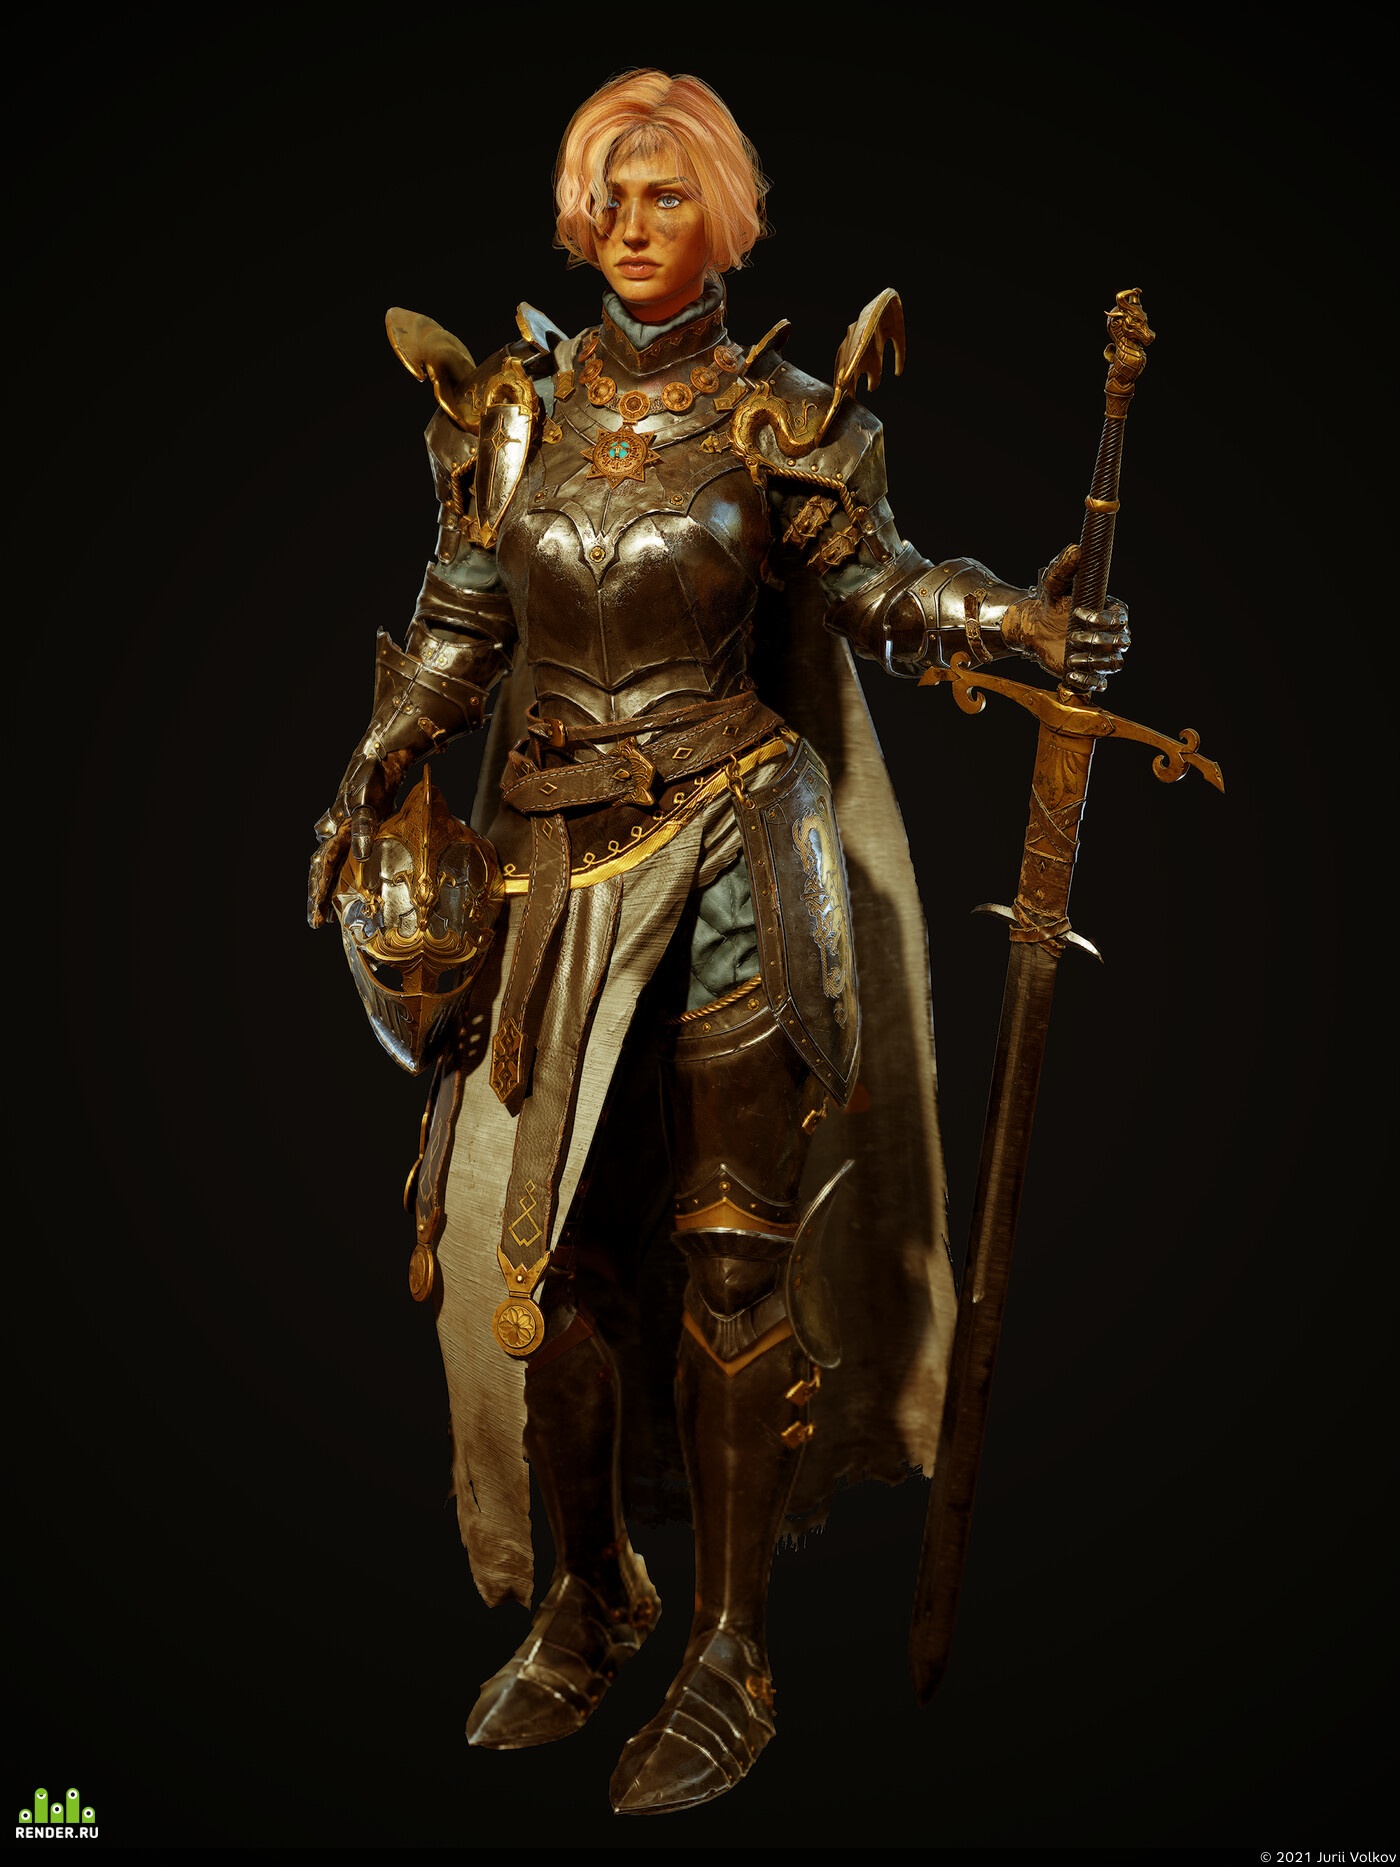 Digital 3D, Real-time, fantasy, game art, Character Modeling, dragon, knight, girl, warrior, midieval